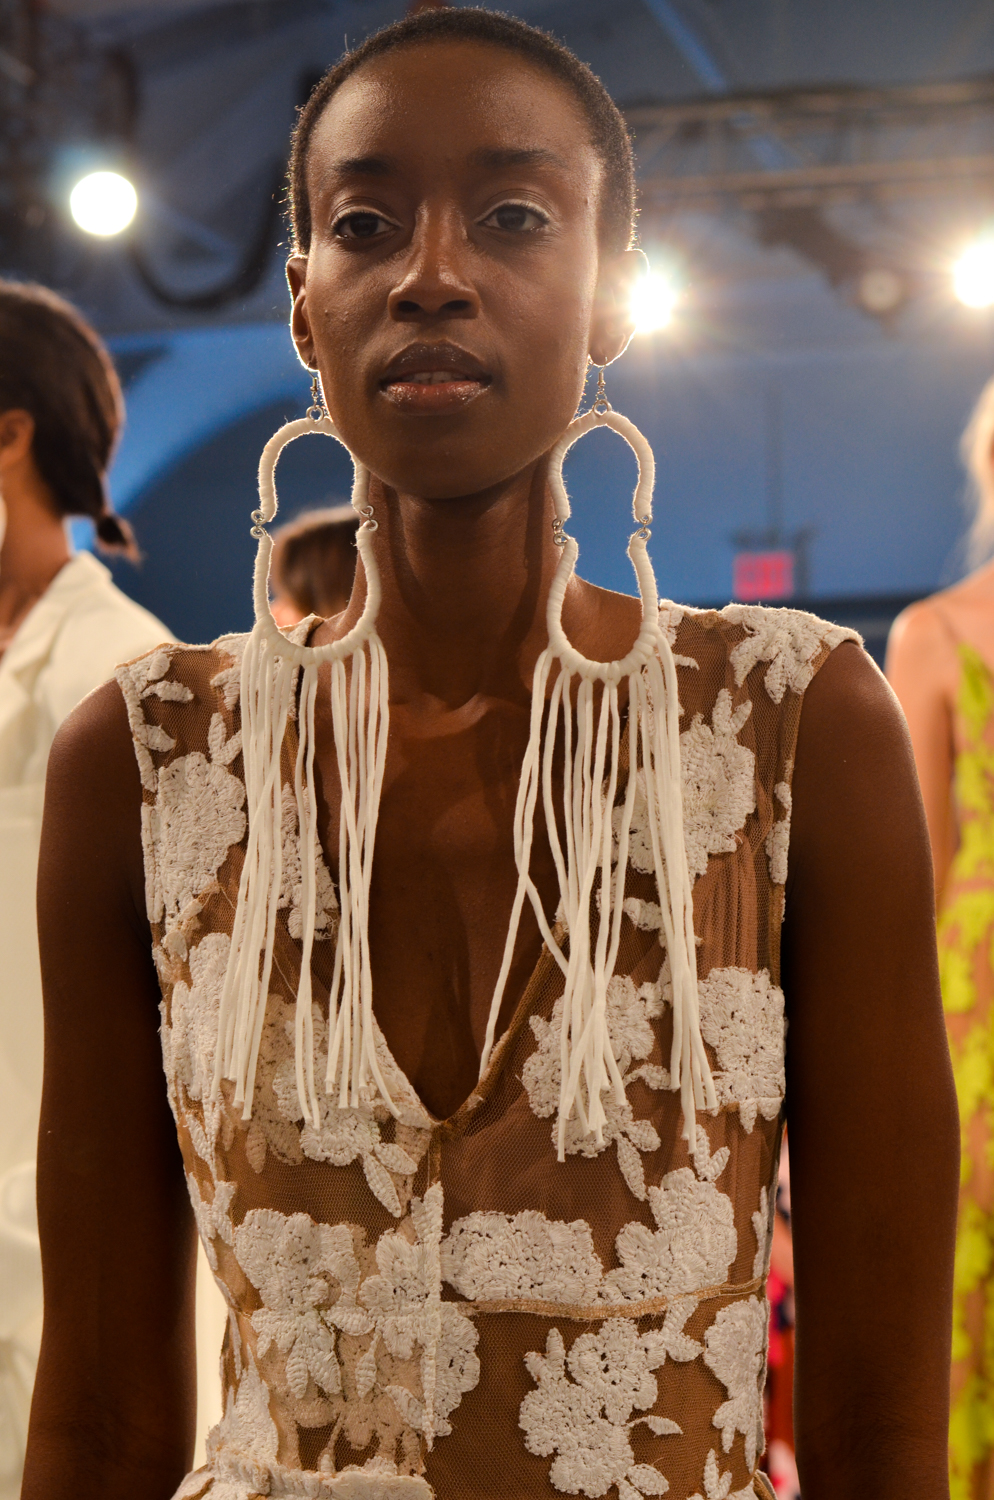 Tracy Reese Spring 2018 Presentation at New York Fashion Week